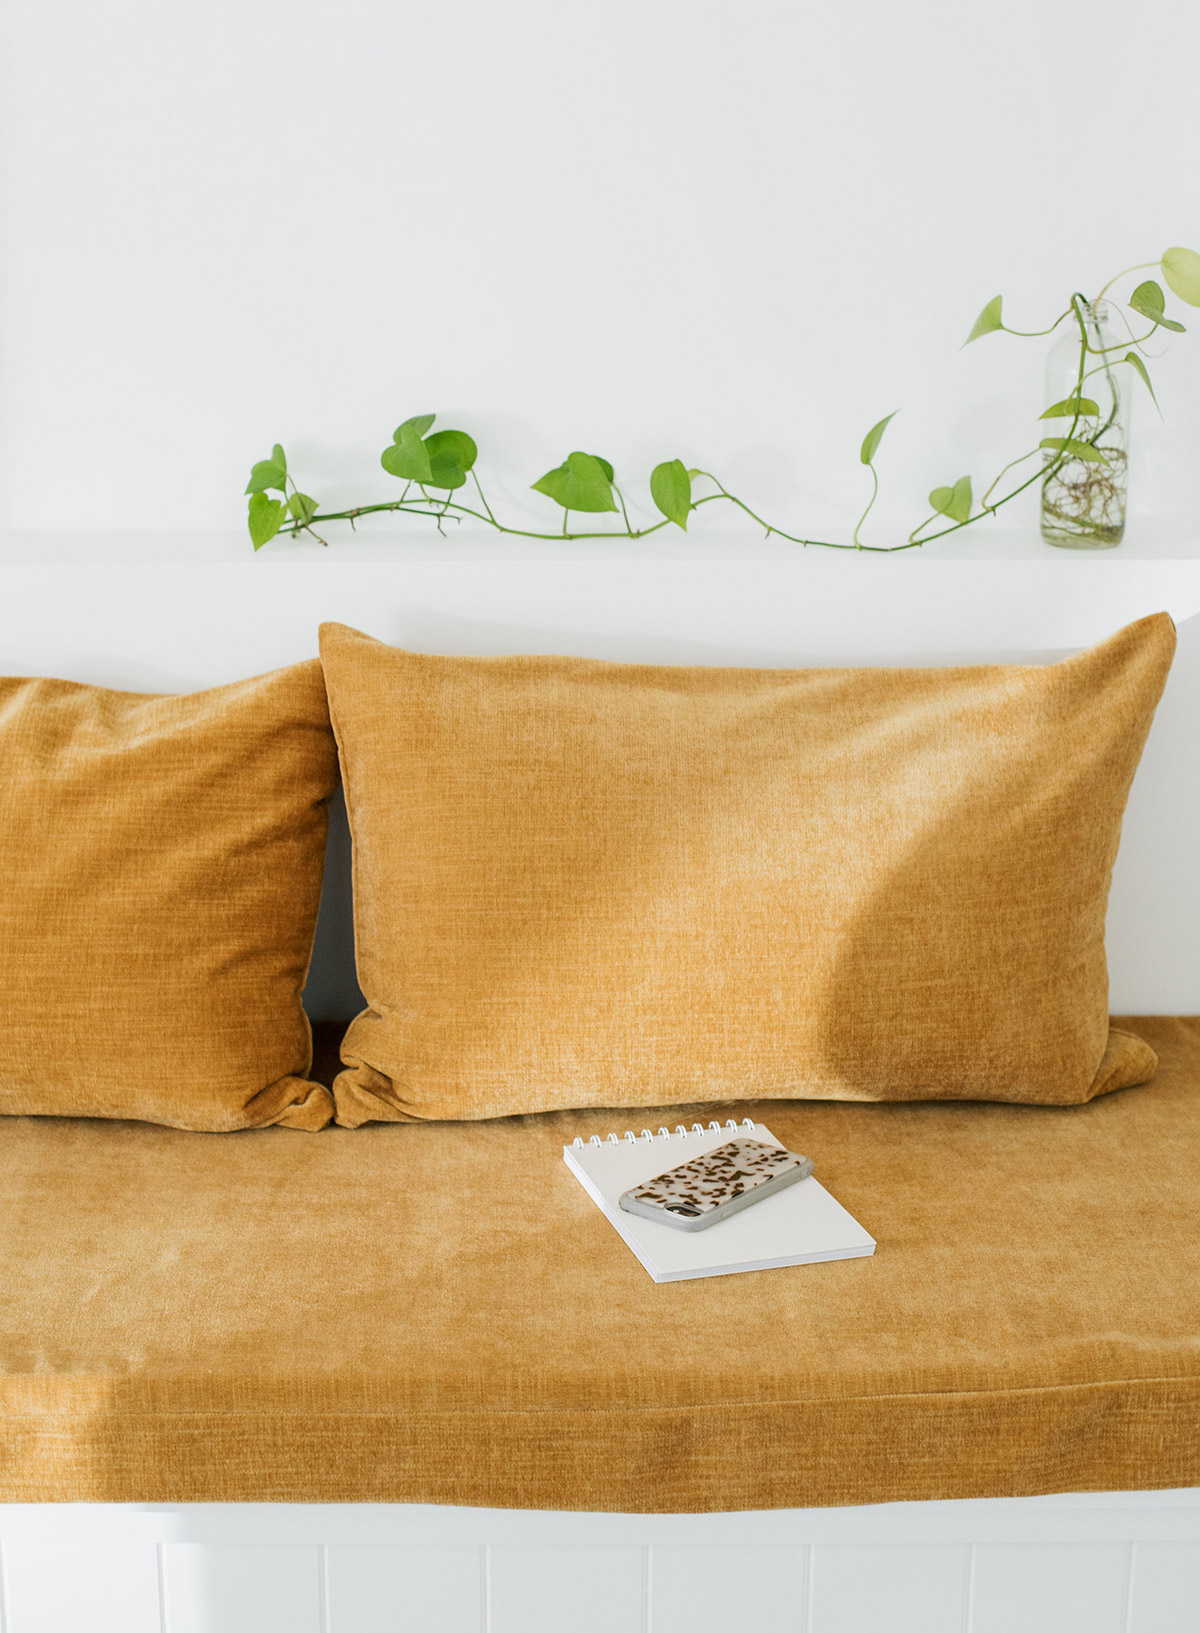 Notebook and phone on mustard sofa